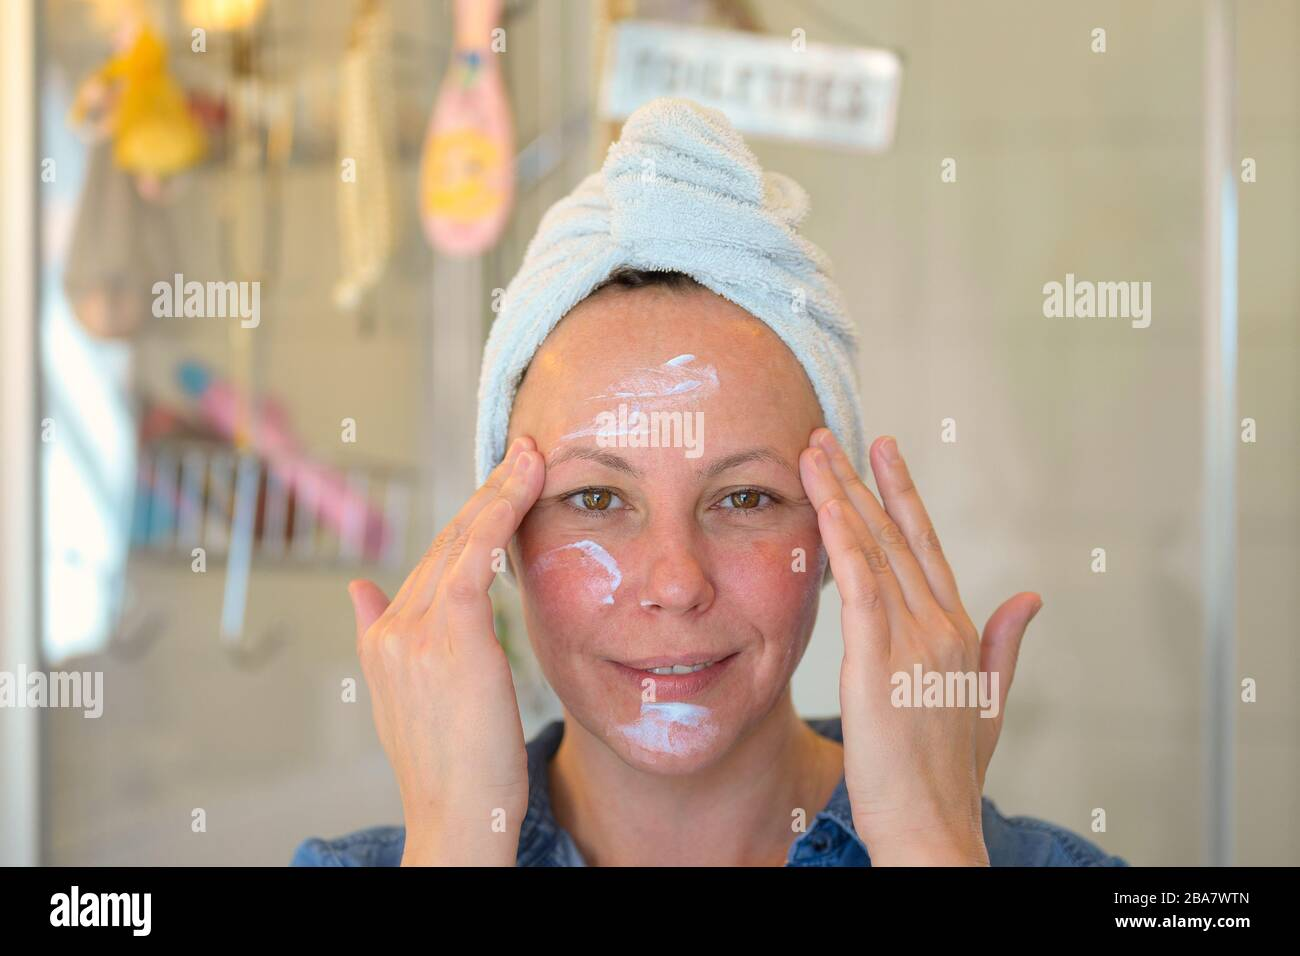 Smiling woman with her hair tied up in a towel applying moisturiser to her face with her fingertips in a skin care and ageing concept Stock Photo